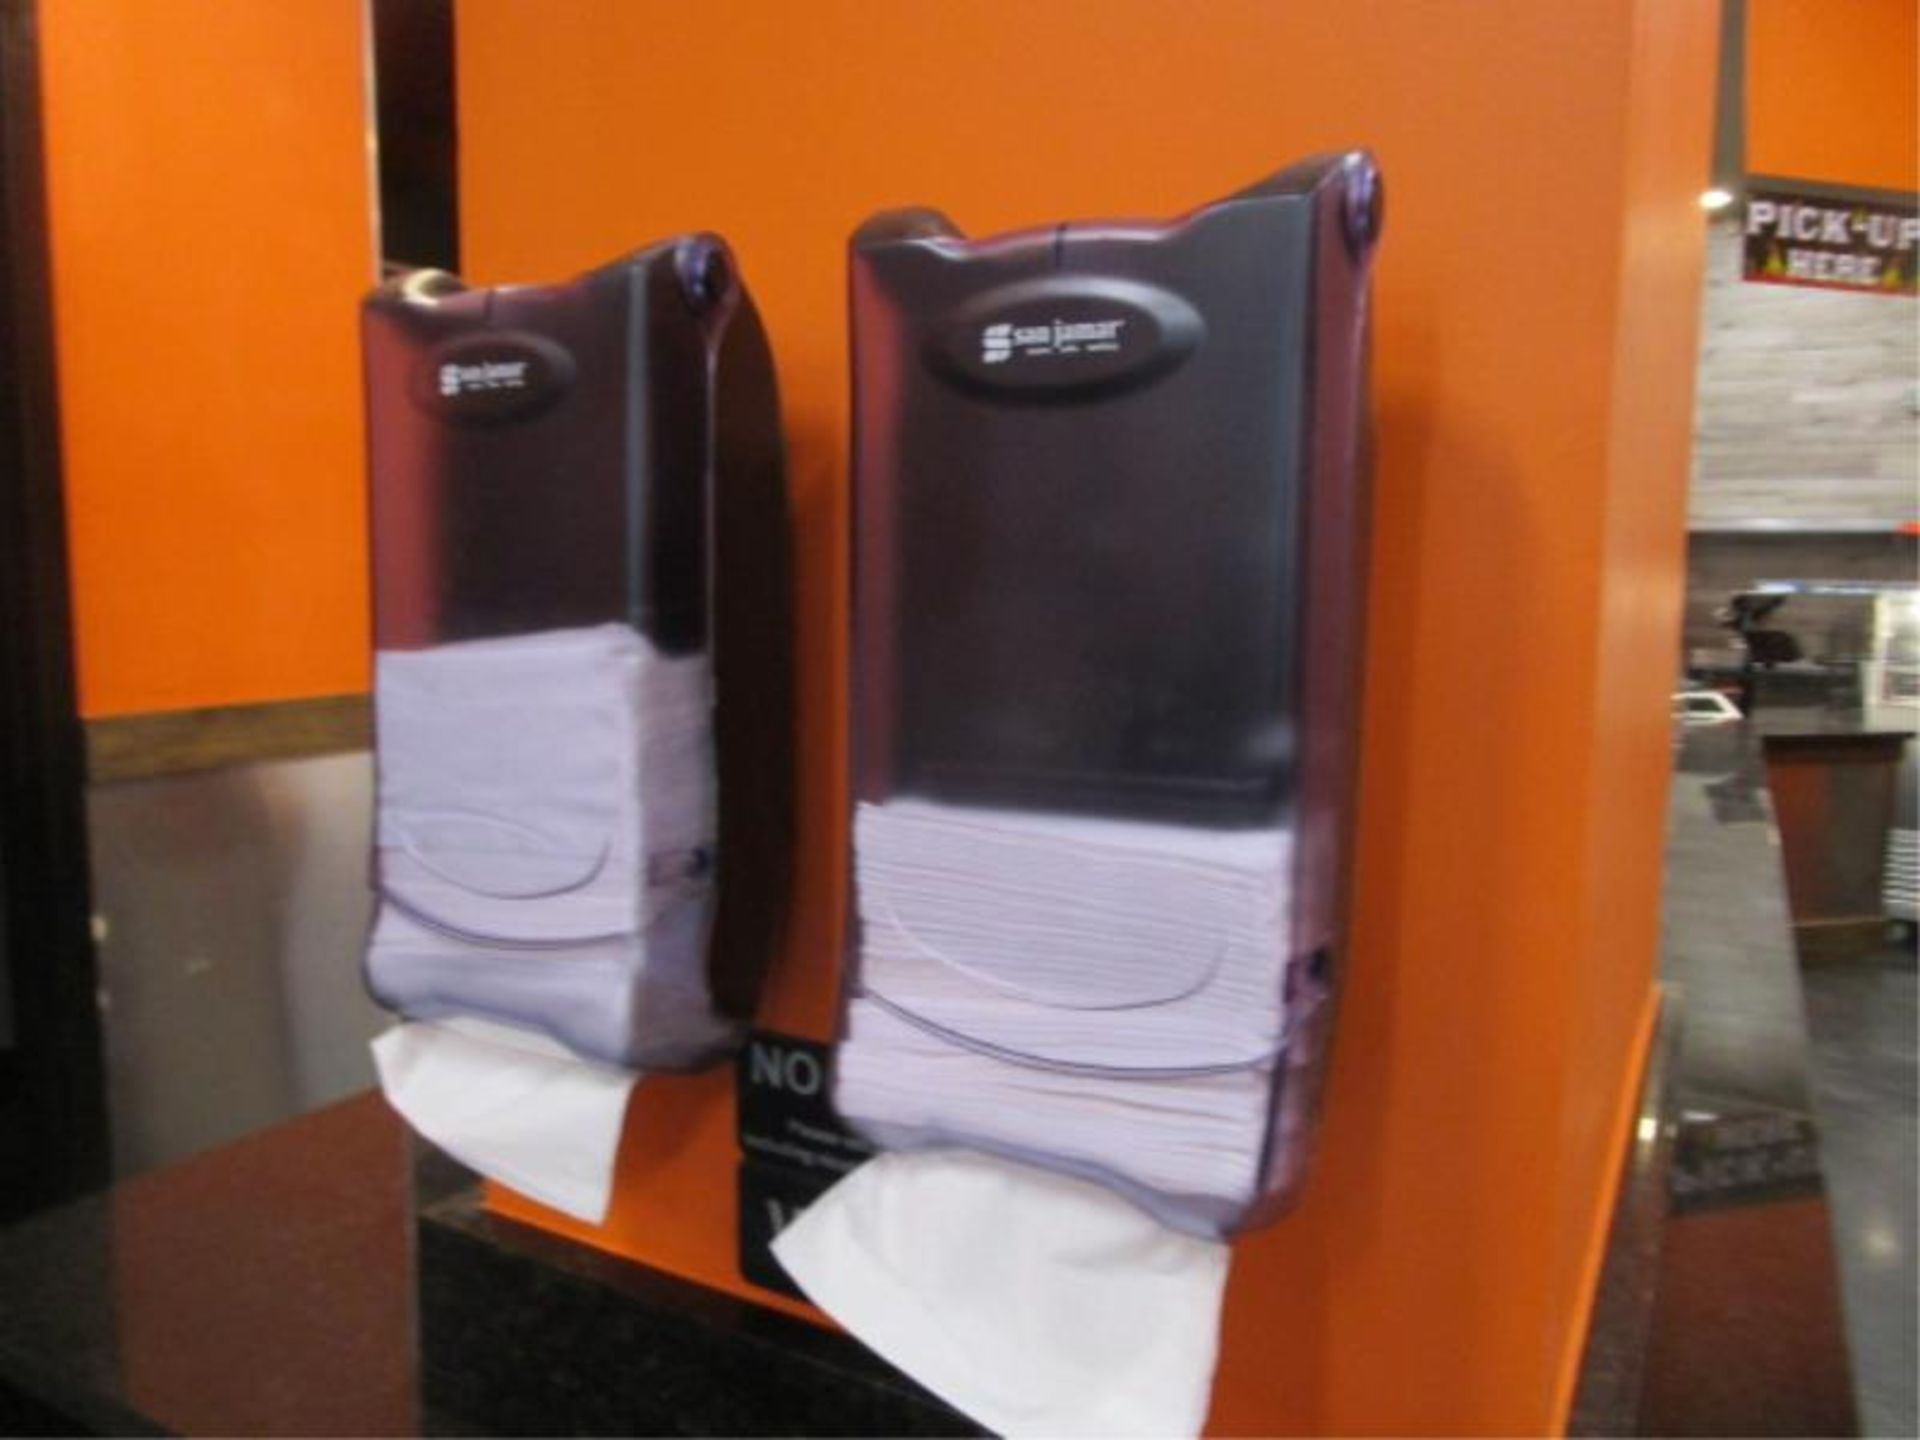 Lot 11 - (3) Dixe Wall Mounted Utensil Dispensers & (2) Napkin Dispenser